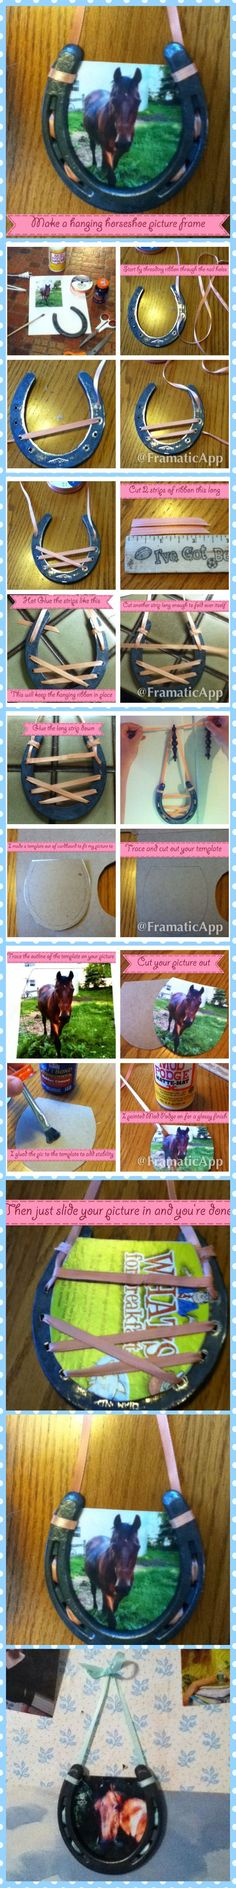 Make a cute and simple hanging horseshoe picture frame...I know someone who would like this! #HorseShoeCrafts